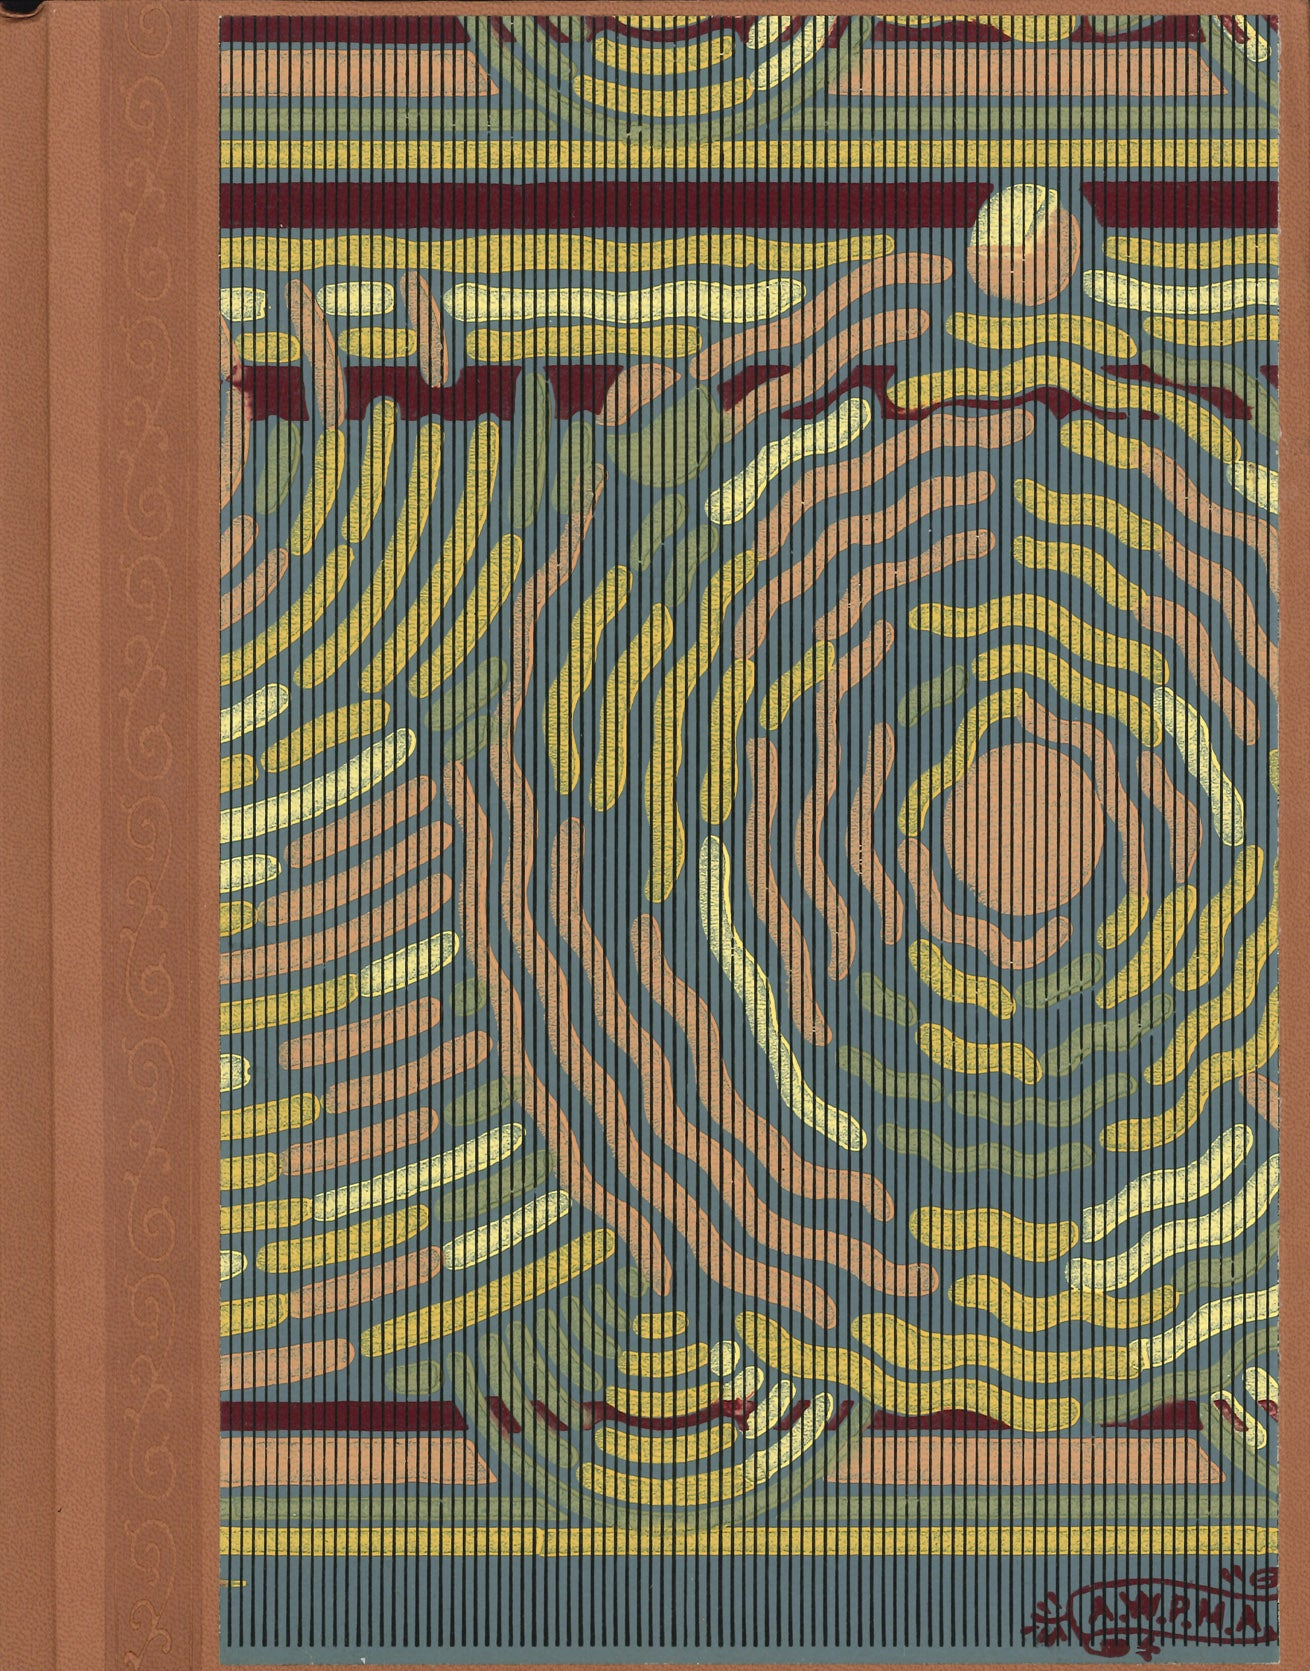 "Concentric Antique Wallpaper Journal - 8.5"" x 11"""